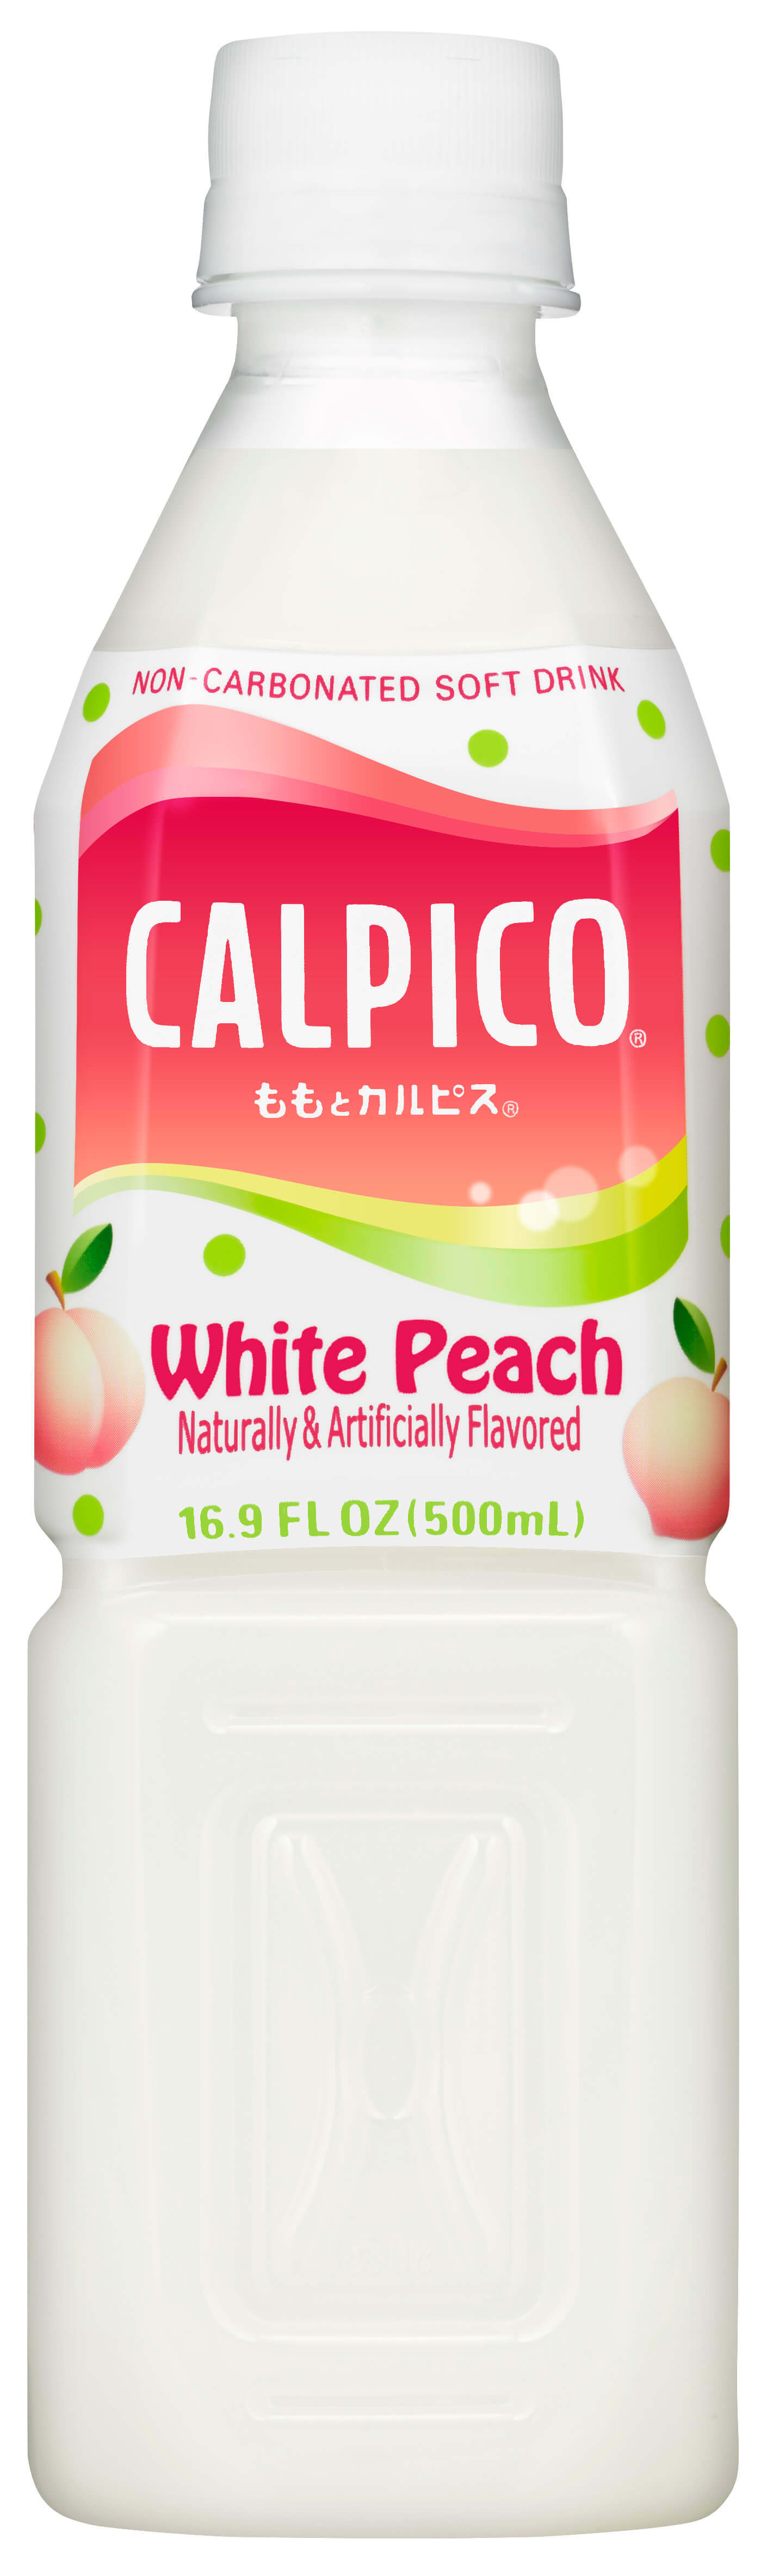 Calpico White Peach